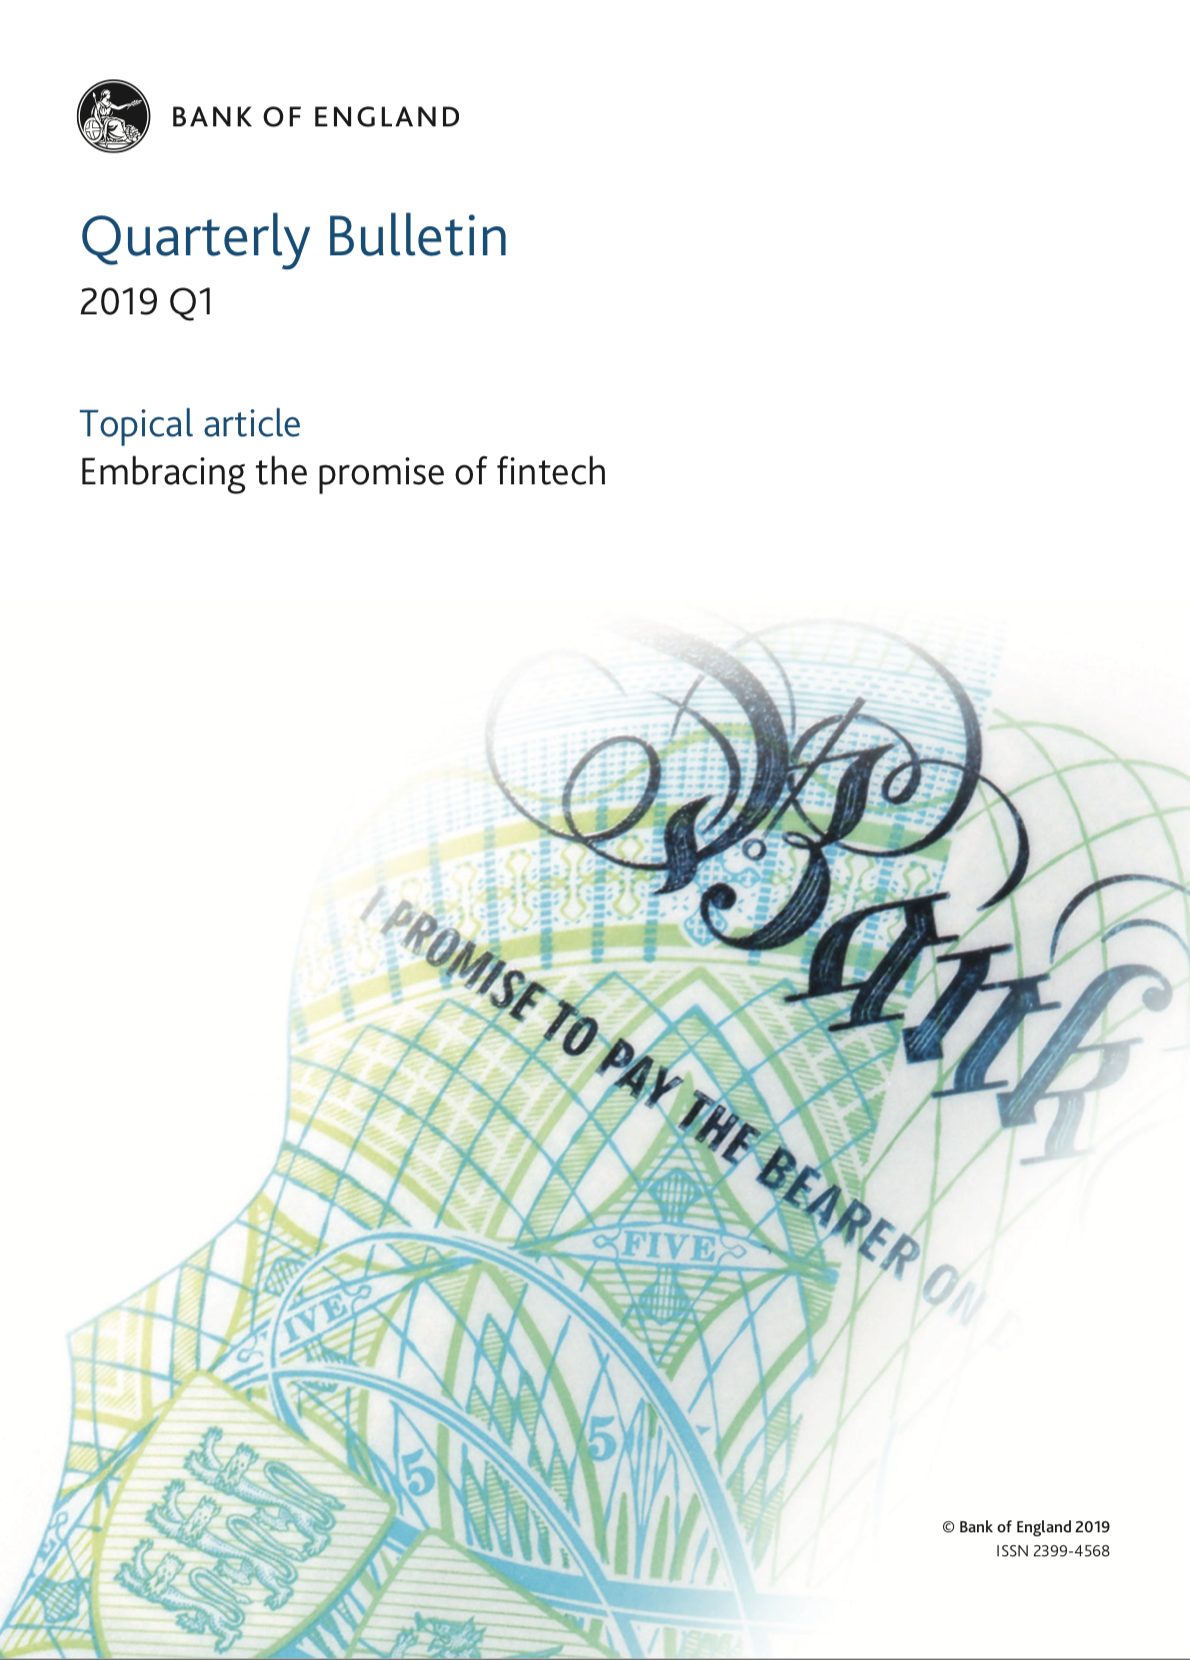 Quarterly Bulletin 2019 Q1:  Topical article Embracing the promise of fintech